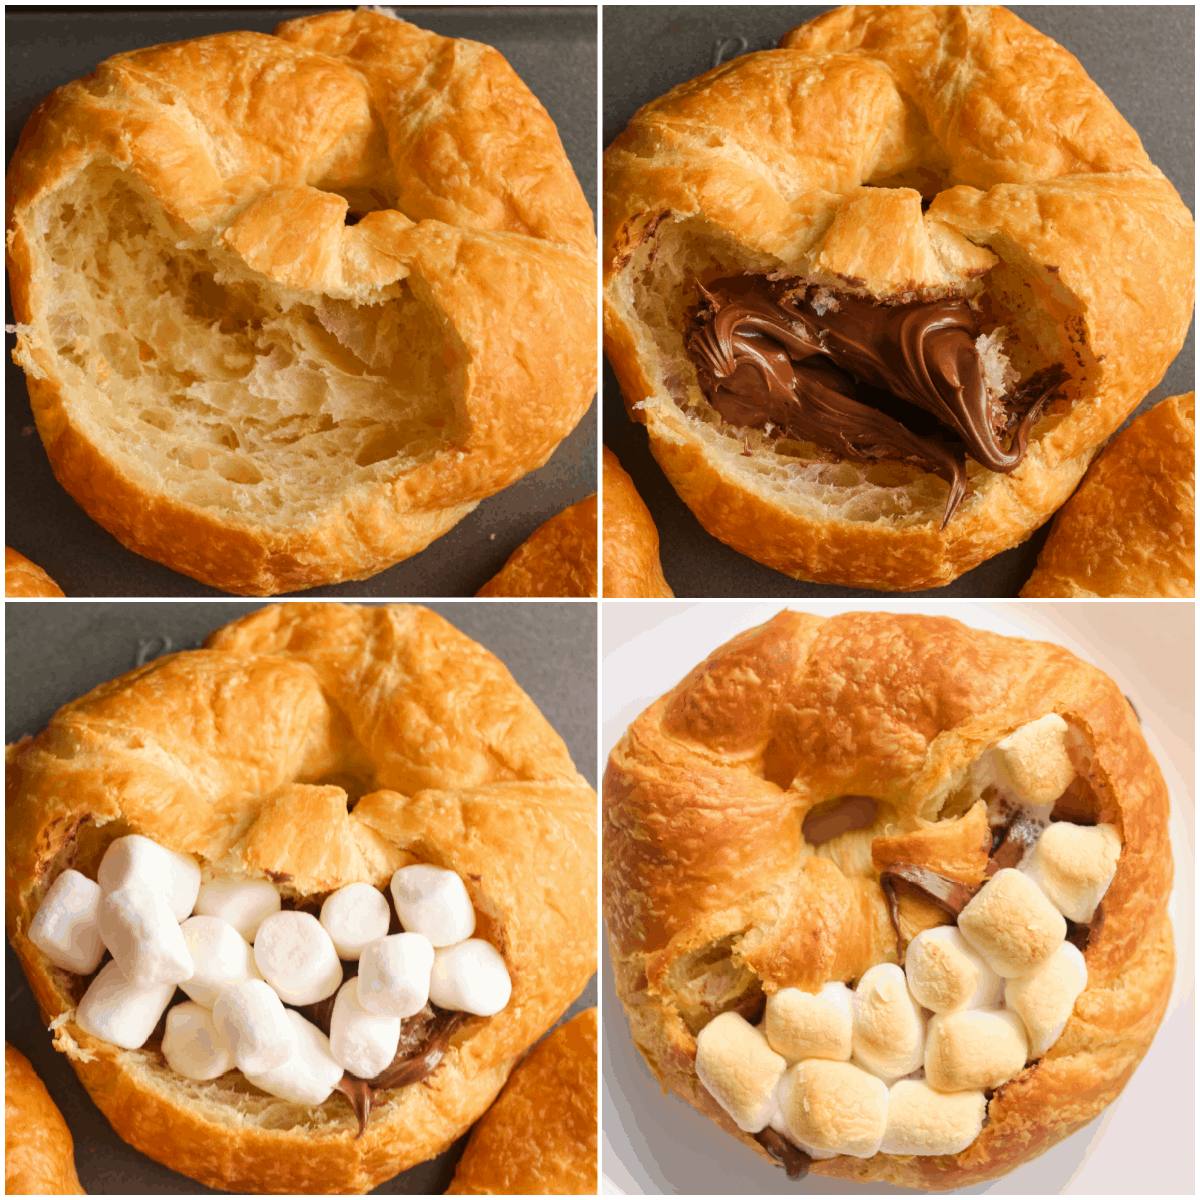 image collage showing the steps for making the stuffed croissants breakfast boat recipe